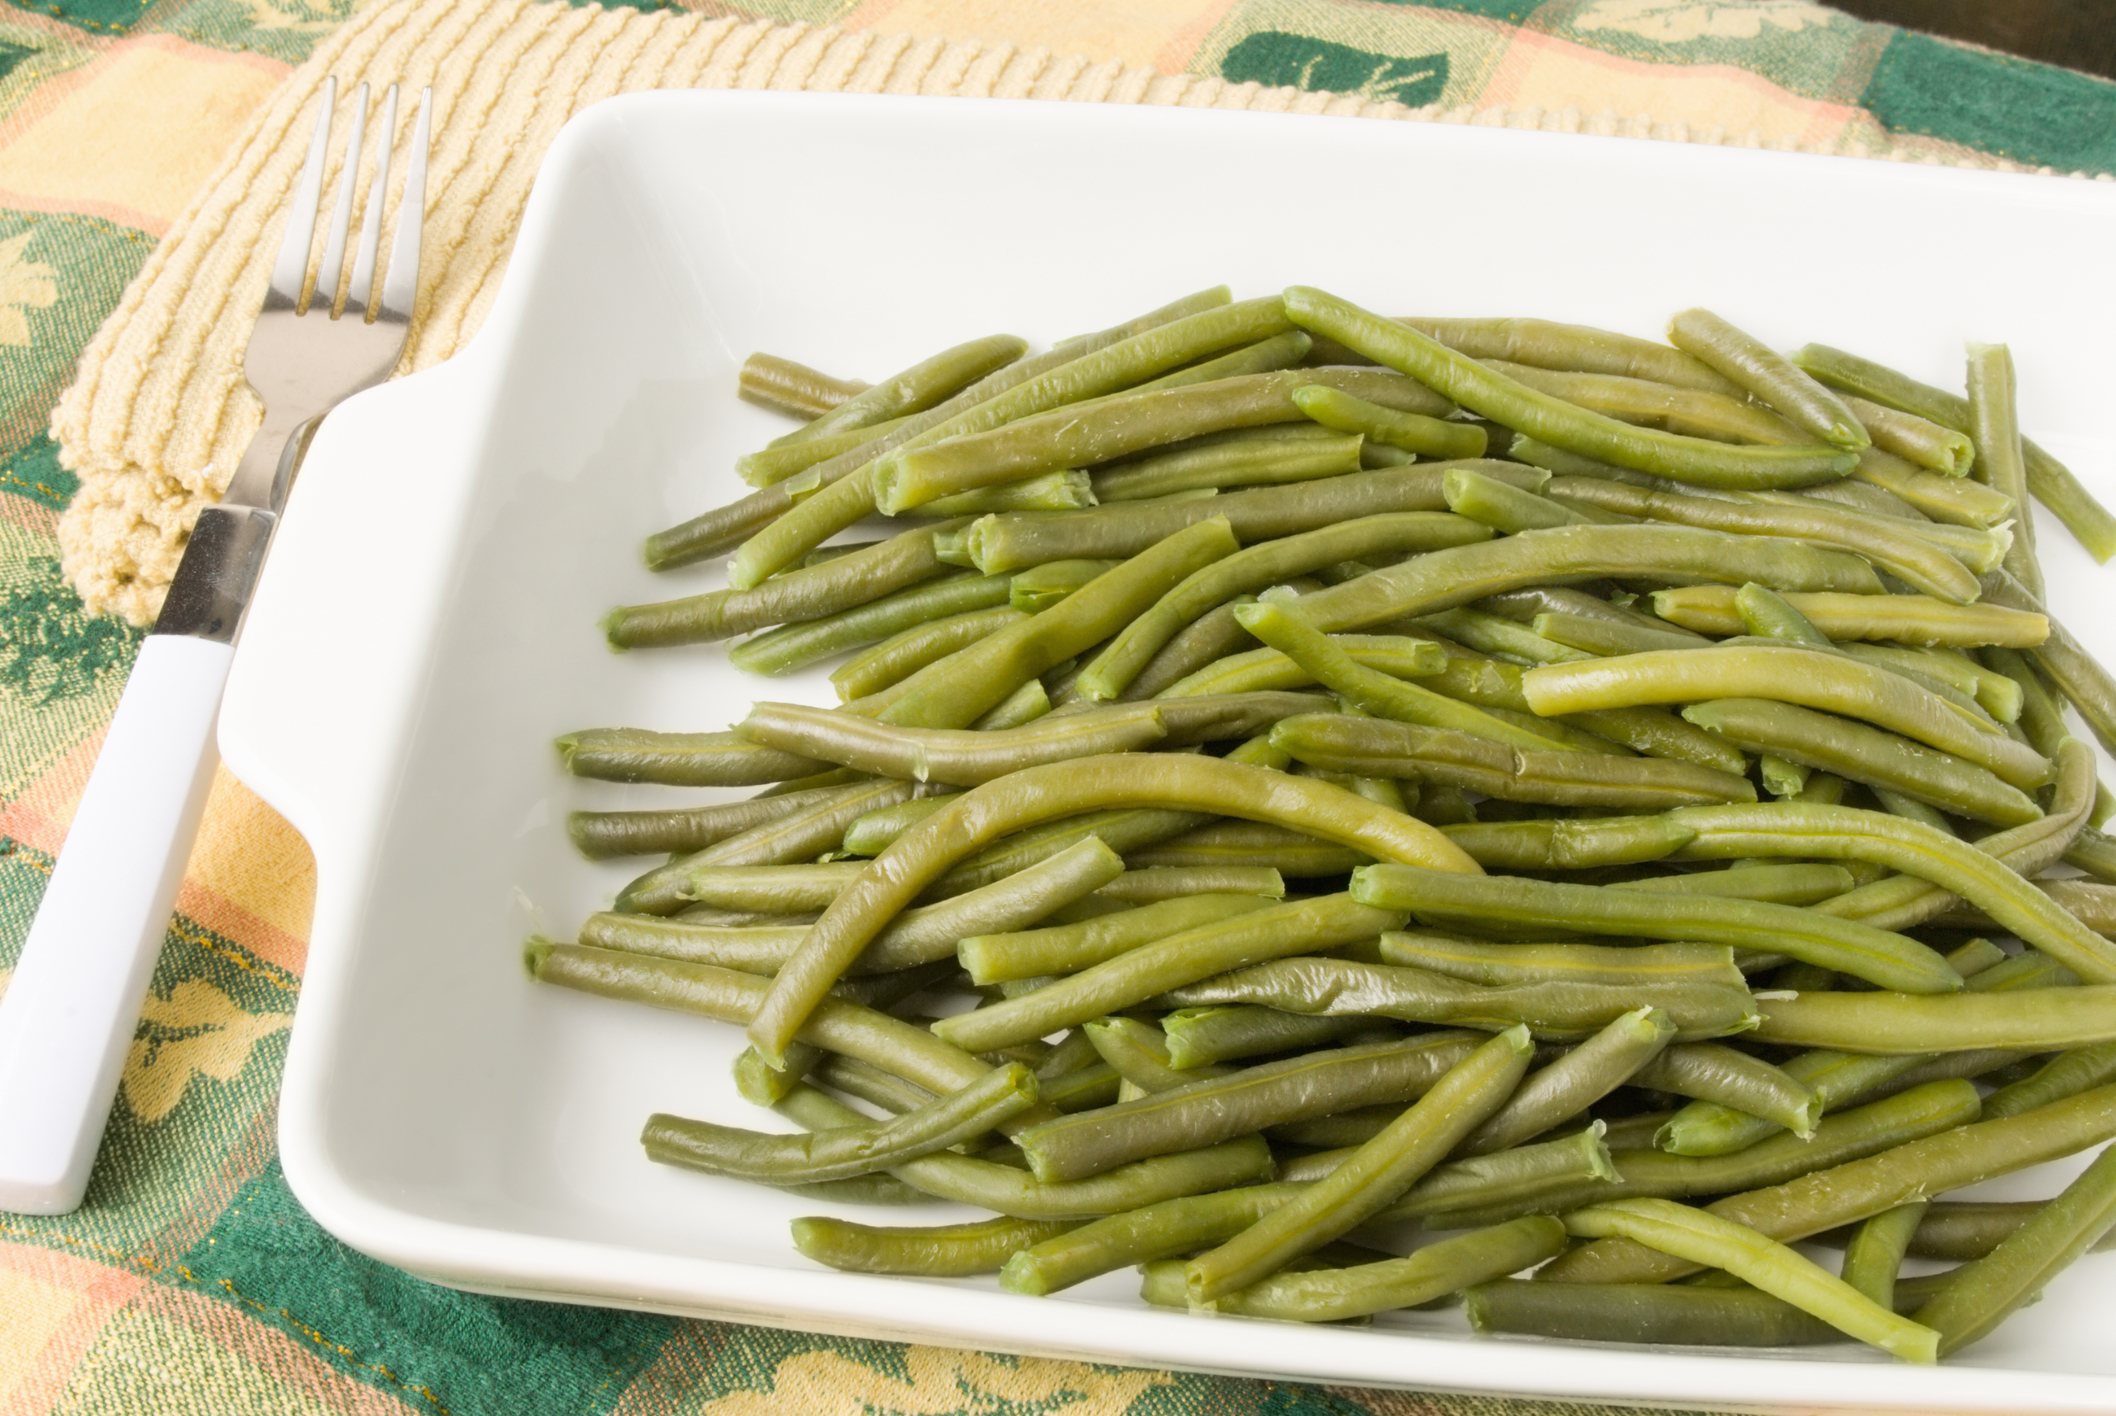 Steamed Green Beans 061A080-6878